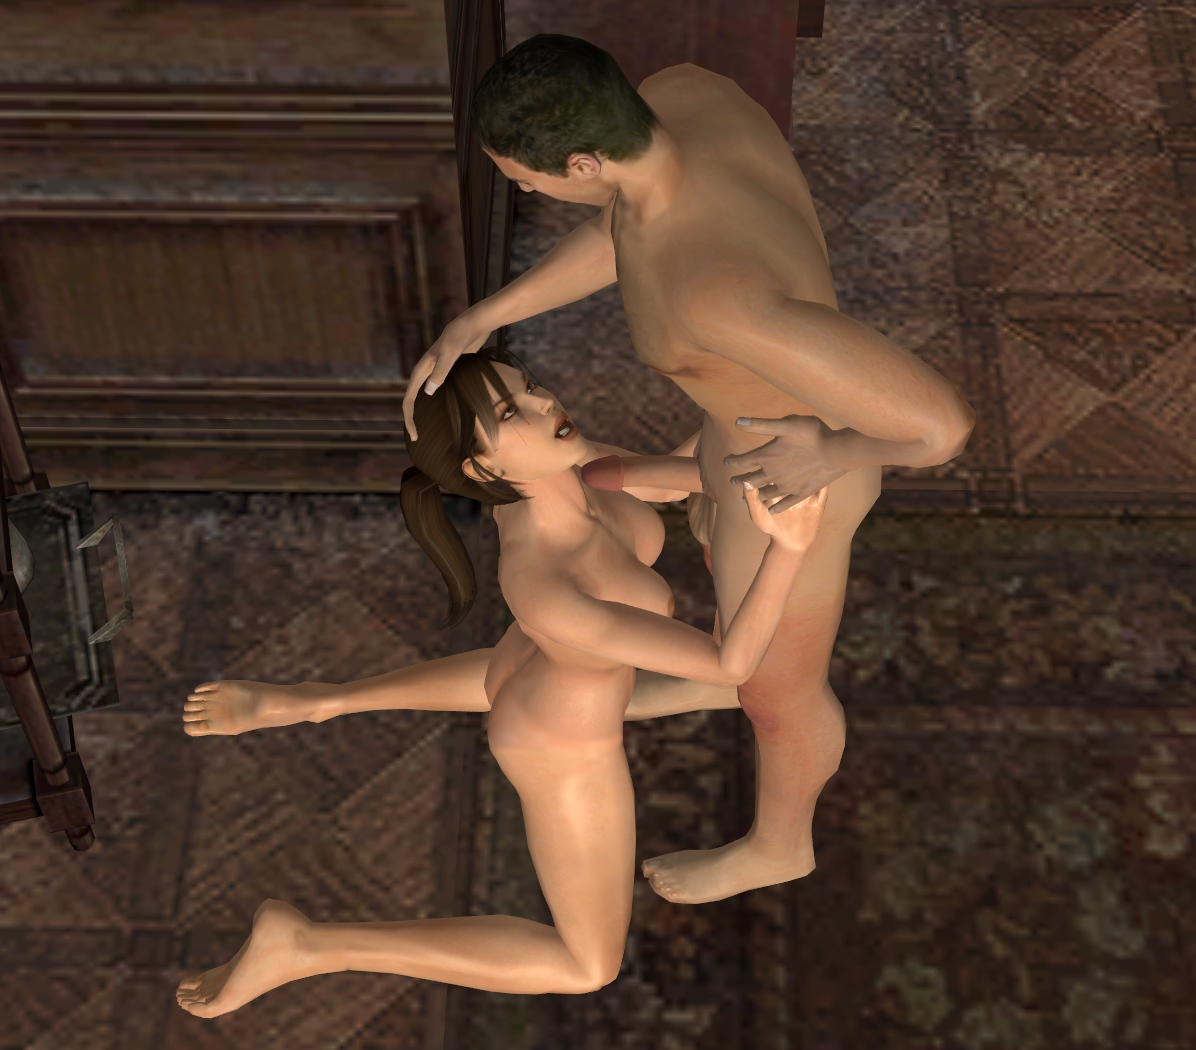 Lara croft nude mods softcore films